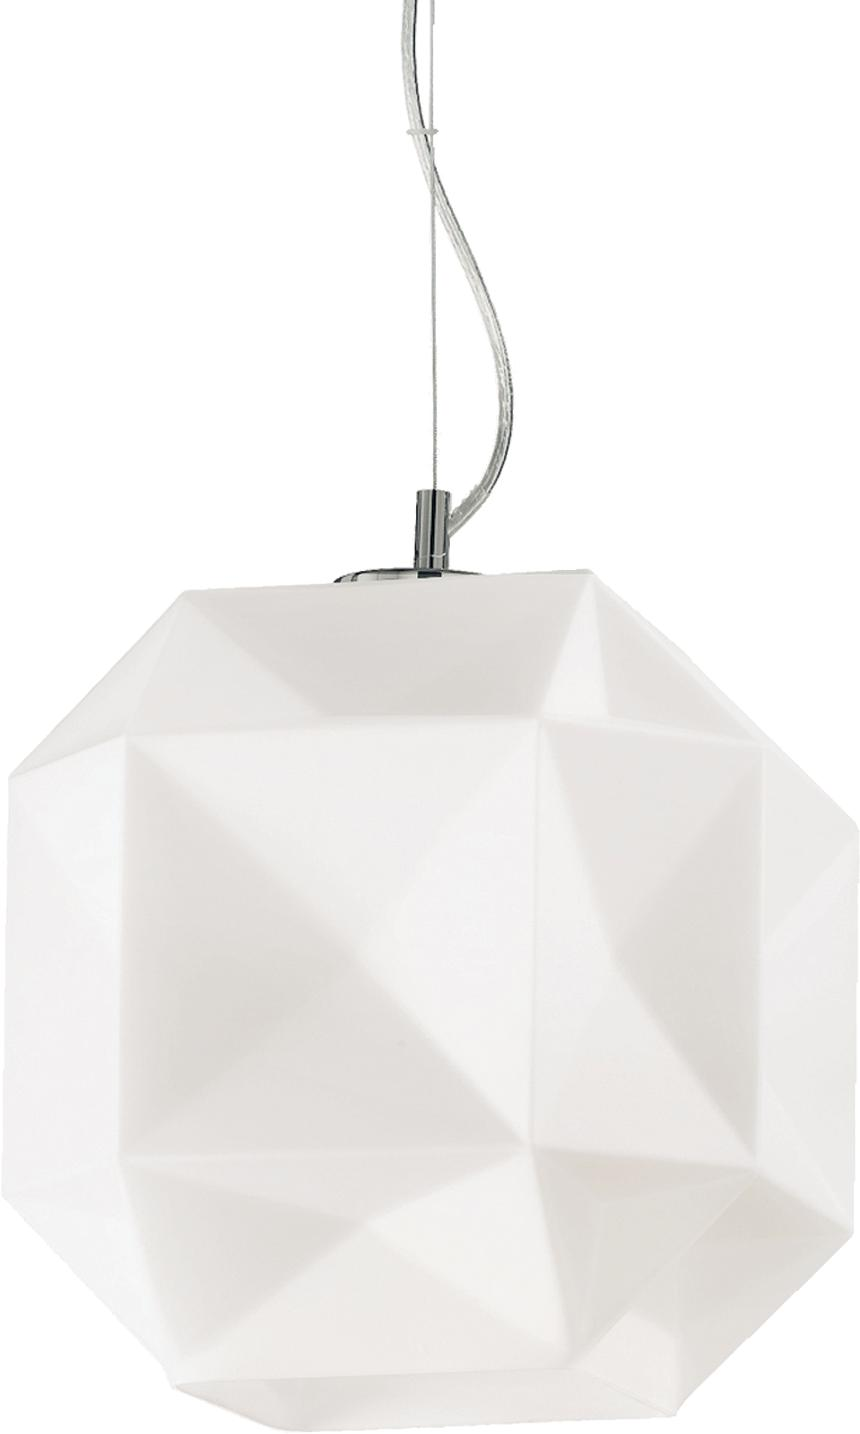 Ideal lux LED diamond sp1 medium Pendelleuchten 5W 22505